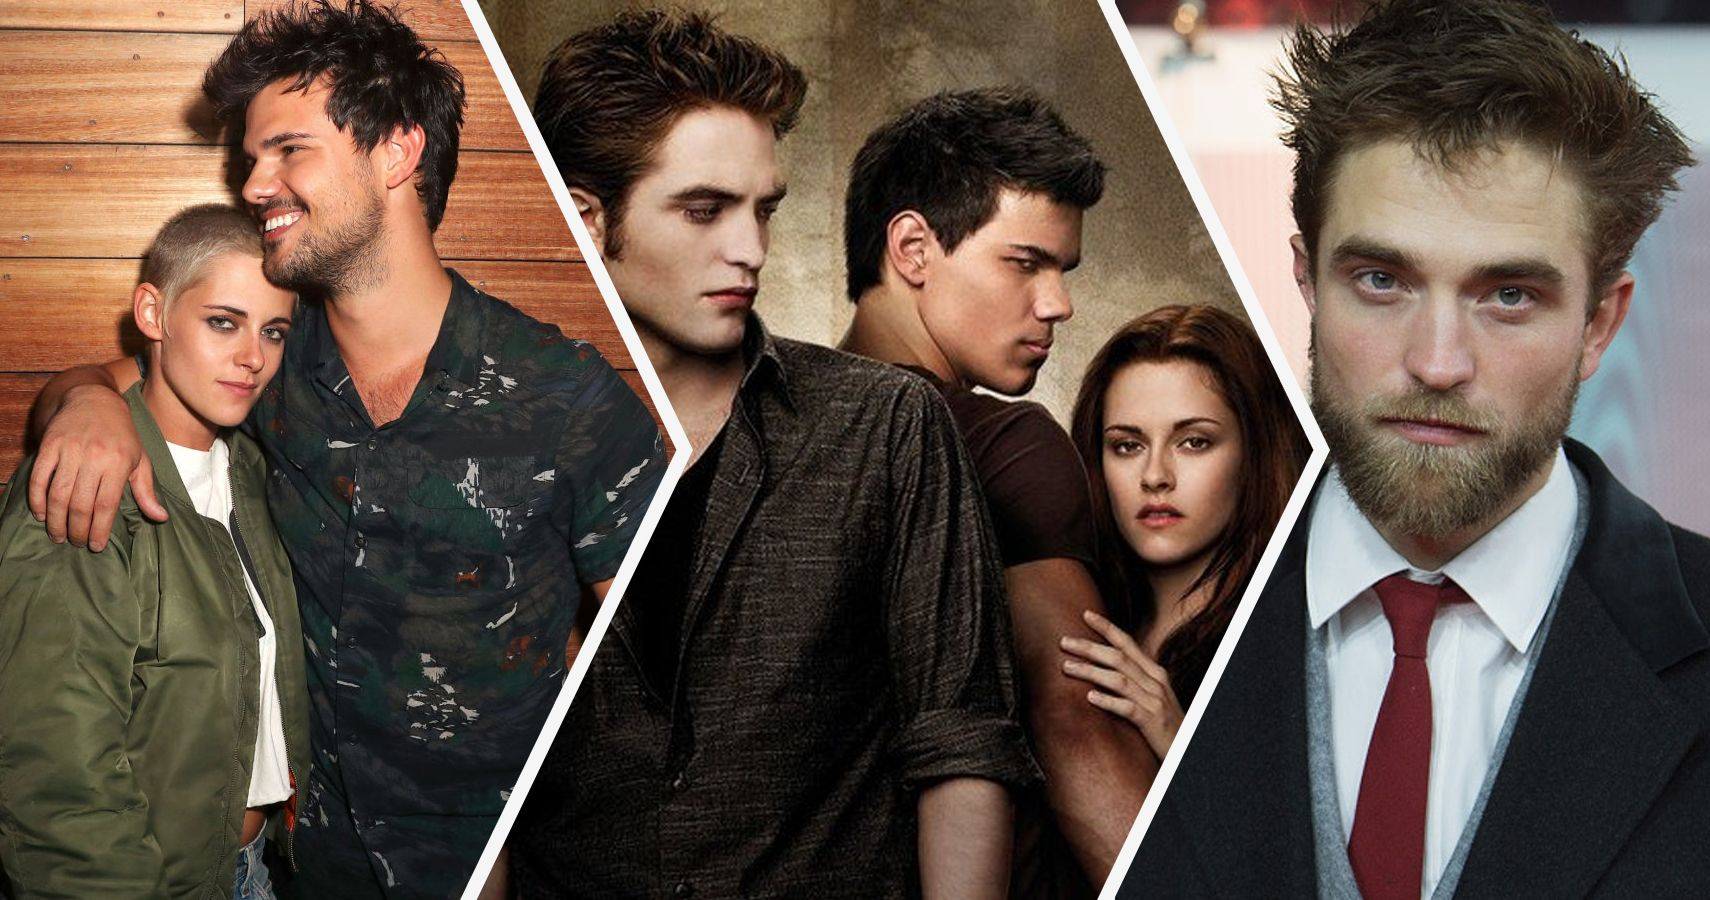 what the cast of twilight looked like in the first movie vs now